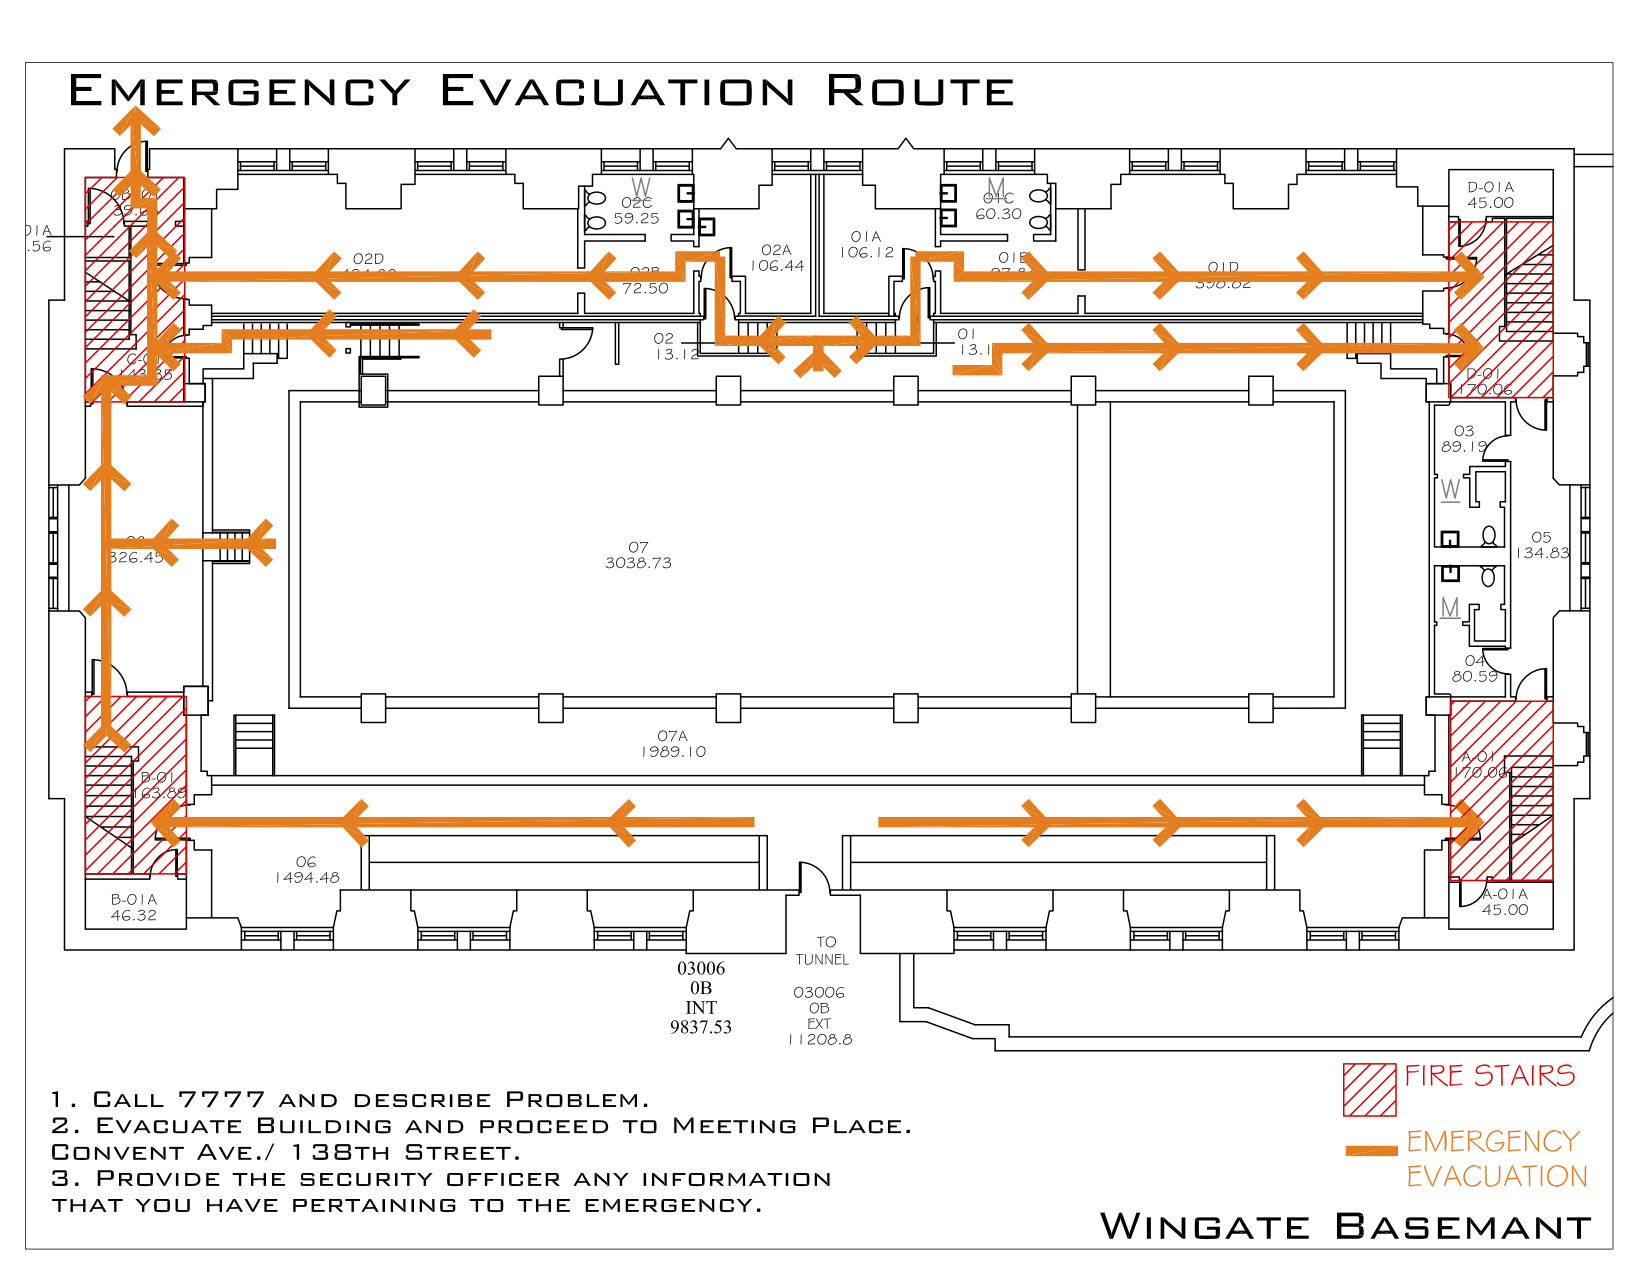 Wingate Hall - Evacuation Route 1